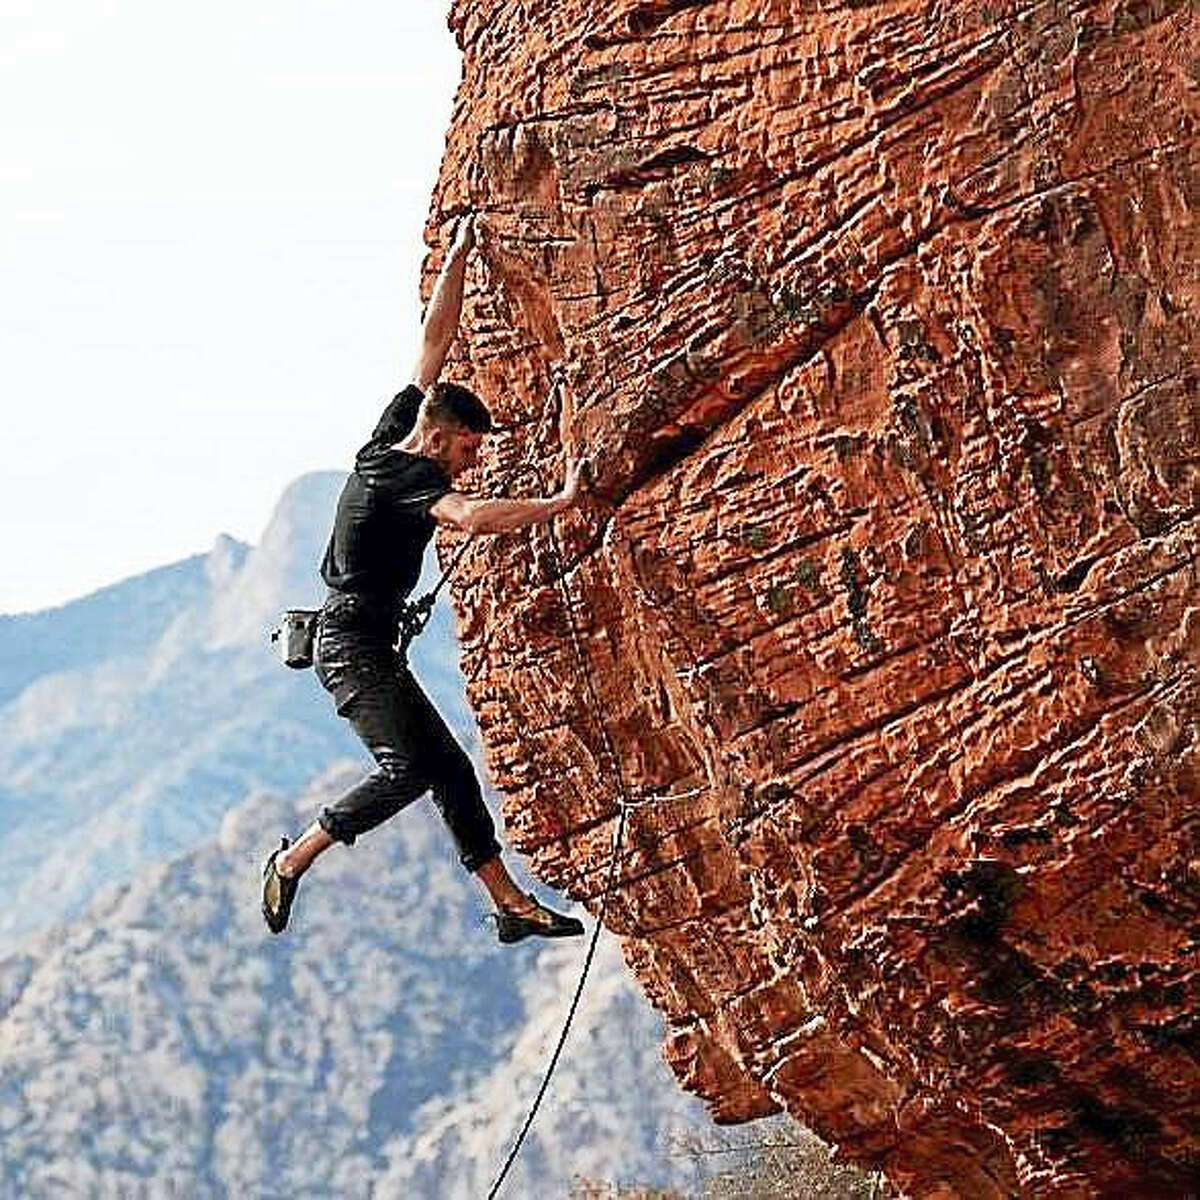 Contributed photo A service is planned Saturday in Middletown for world-class rock climber Phillip Schaal, 35, who passed away unexpectedly Oct. 22.